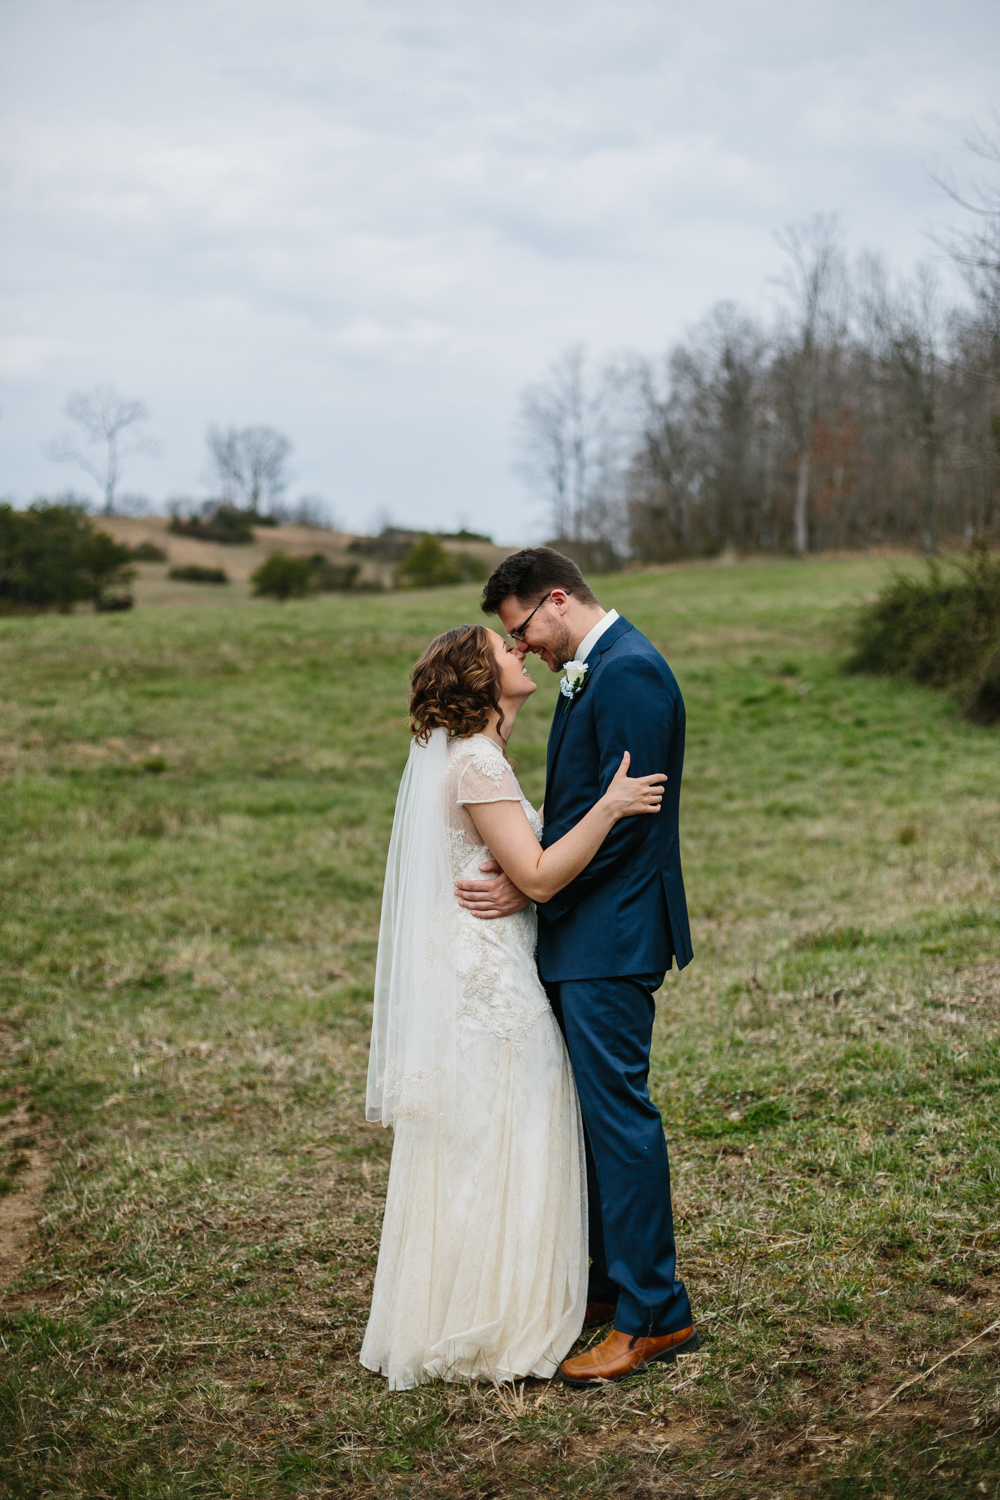 Fun, Happy Spring Wedding by Corrie Mick Photography-77.jpg